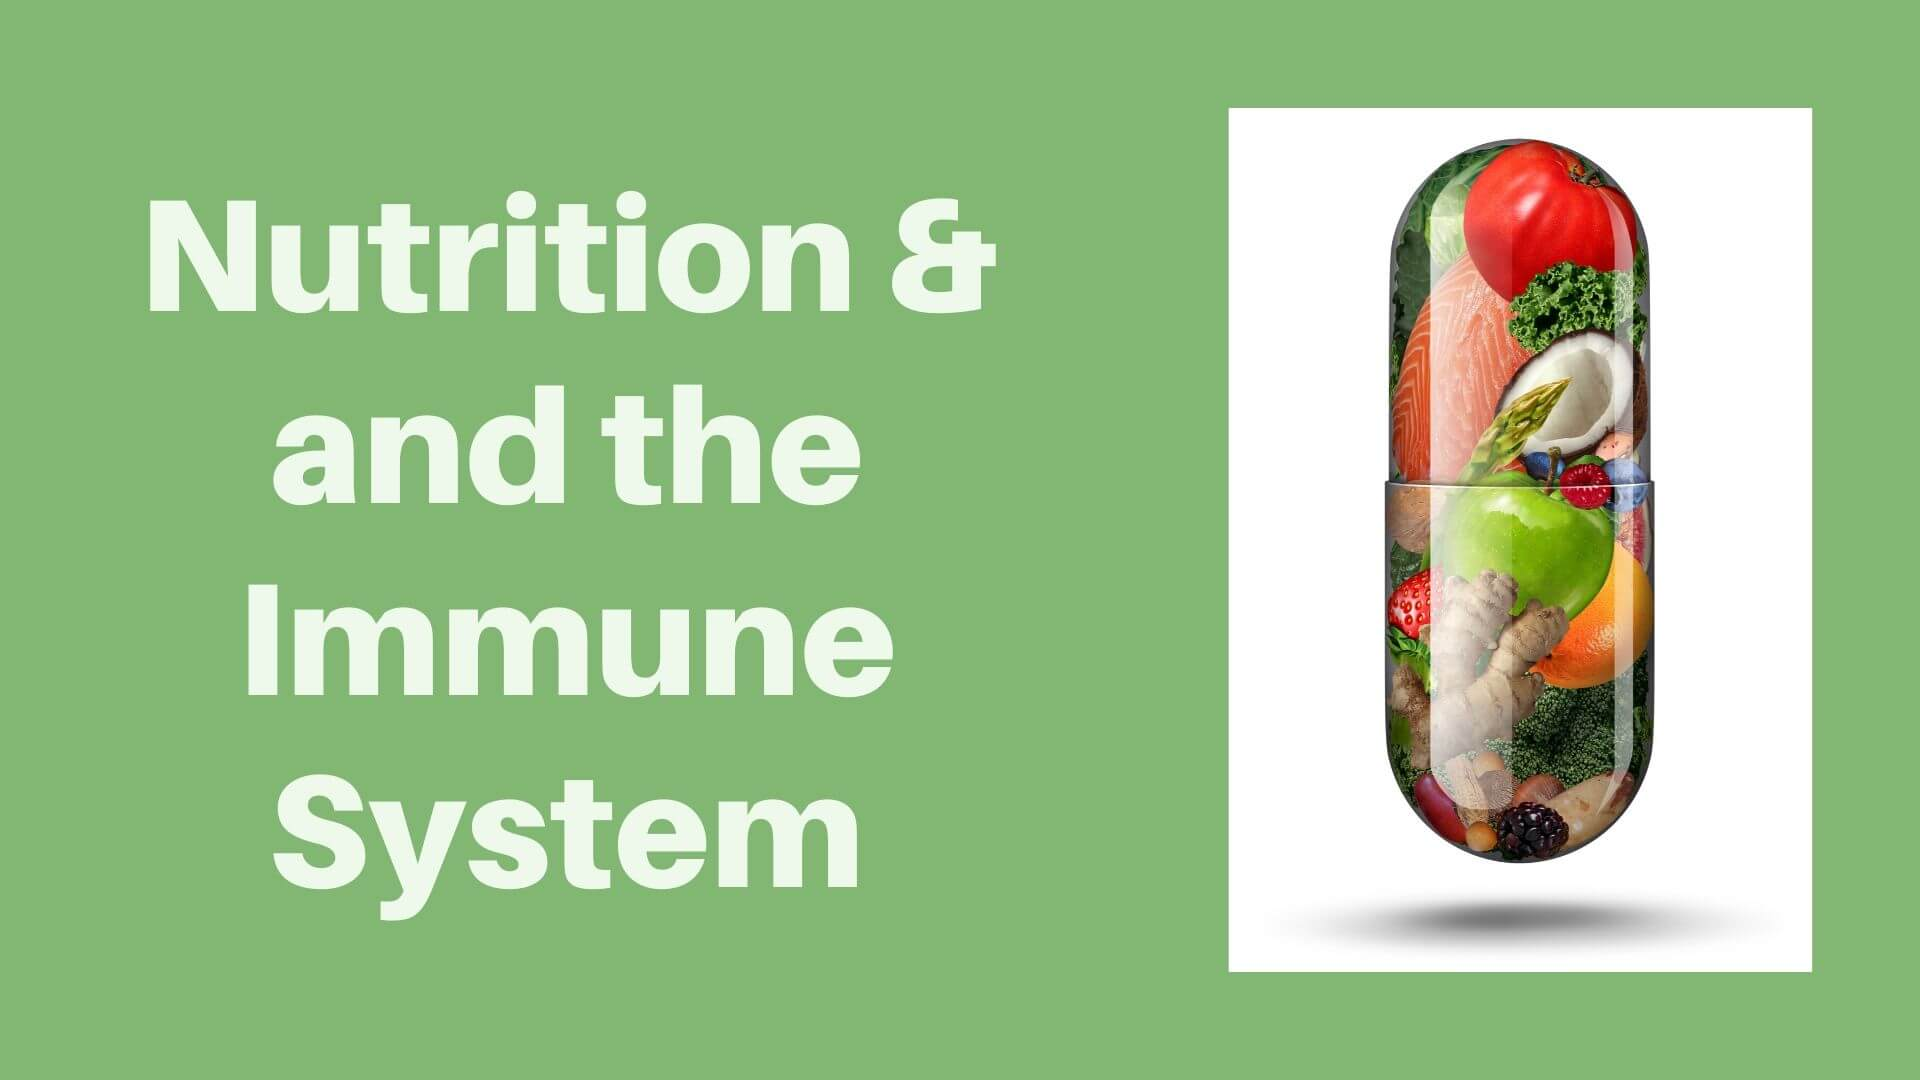 Nutrition and the immune system I Sharrets Nutritions